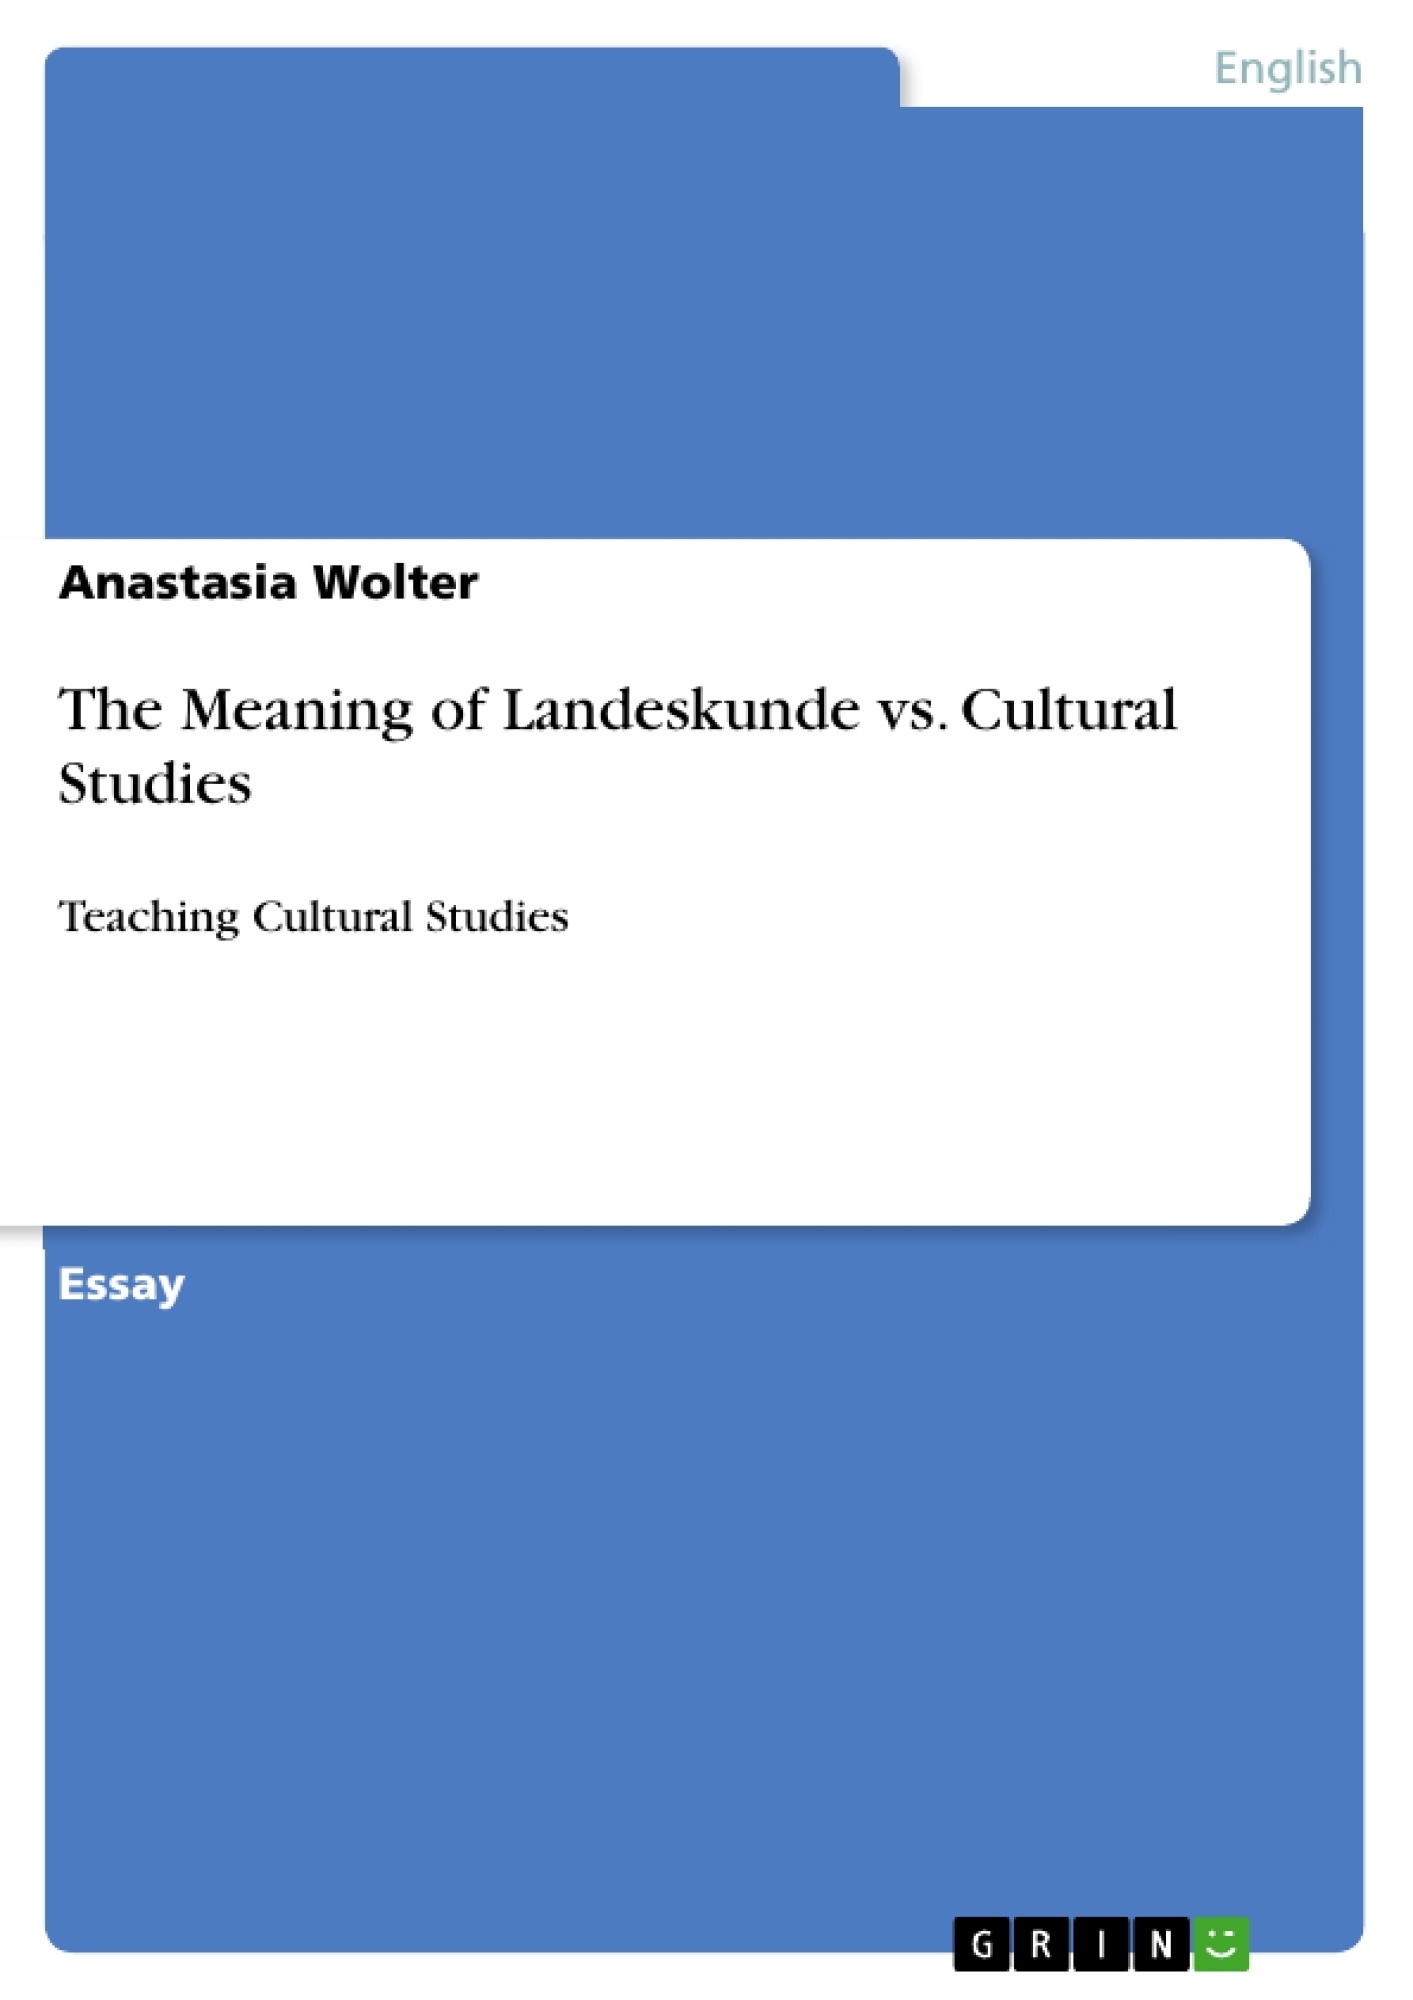 Example of culture studies essay